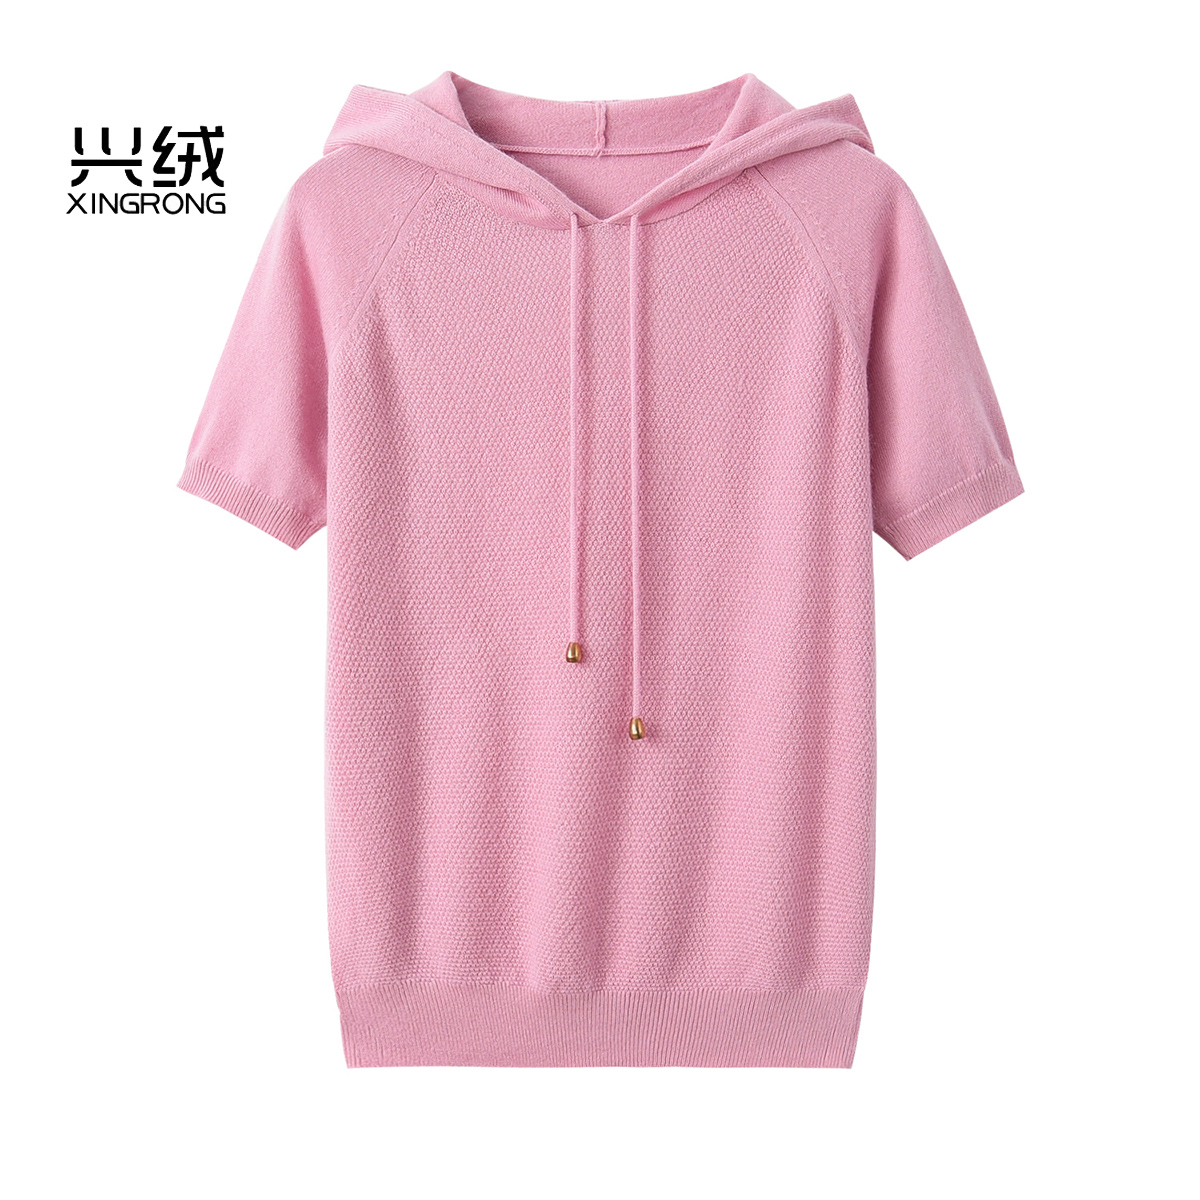 Xingrong cashmere sweater womens hooded short sleeve Hoodie loose Korean sports knitting half sleeve Pullover Sweater new T-shirt